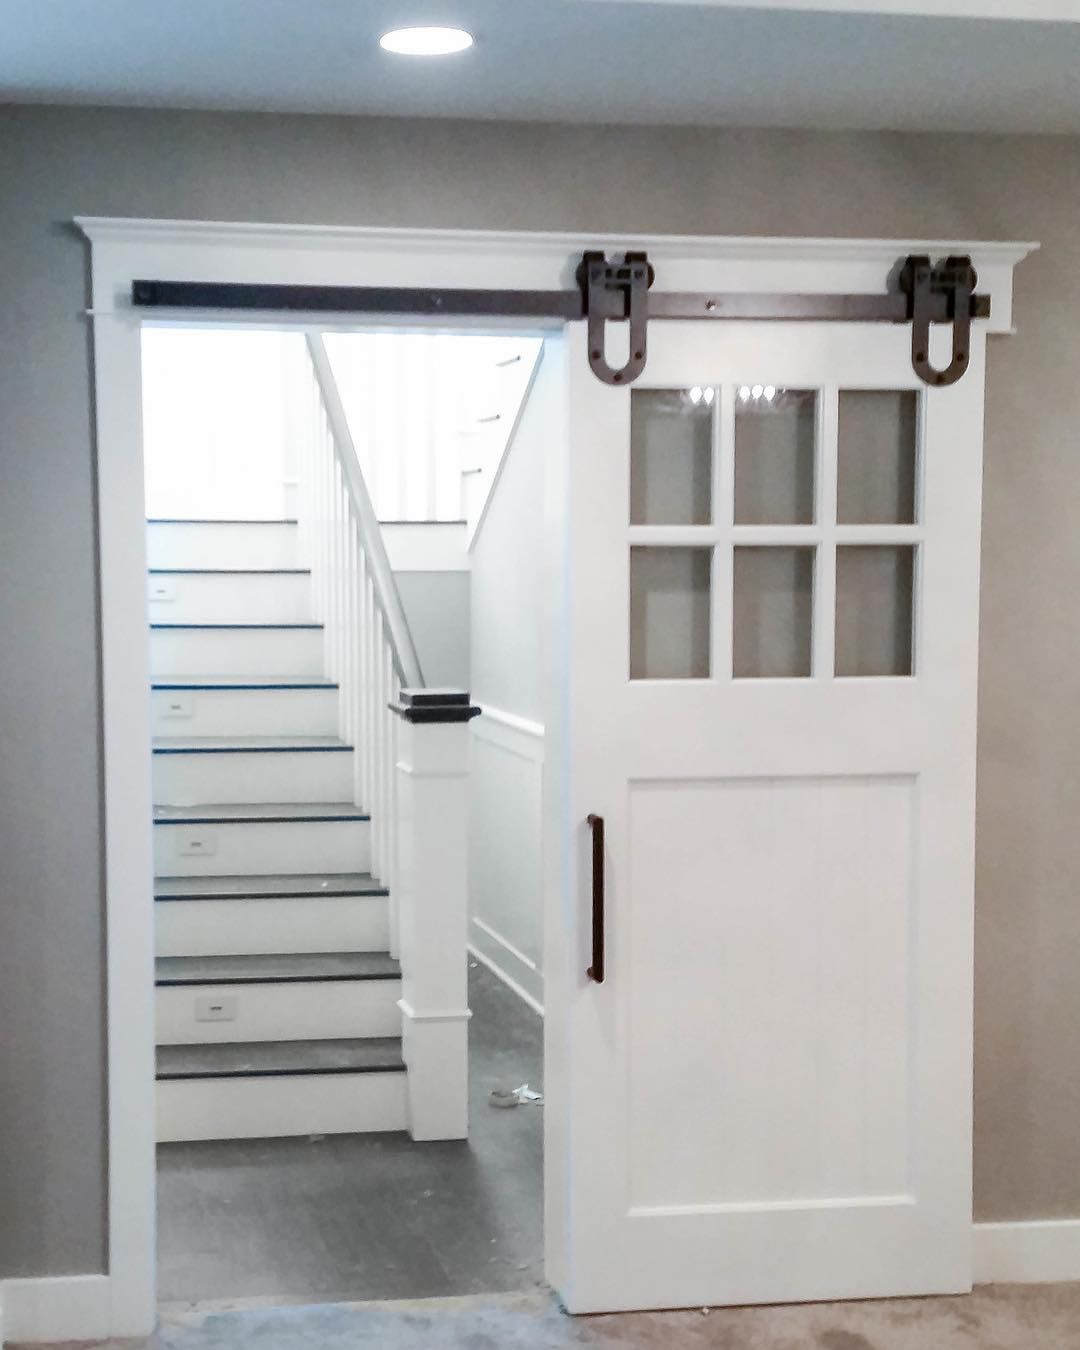 Adding The Barn Door At The Bottom Of The Staircase Is A Great Idea It Adds Character And A